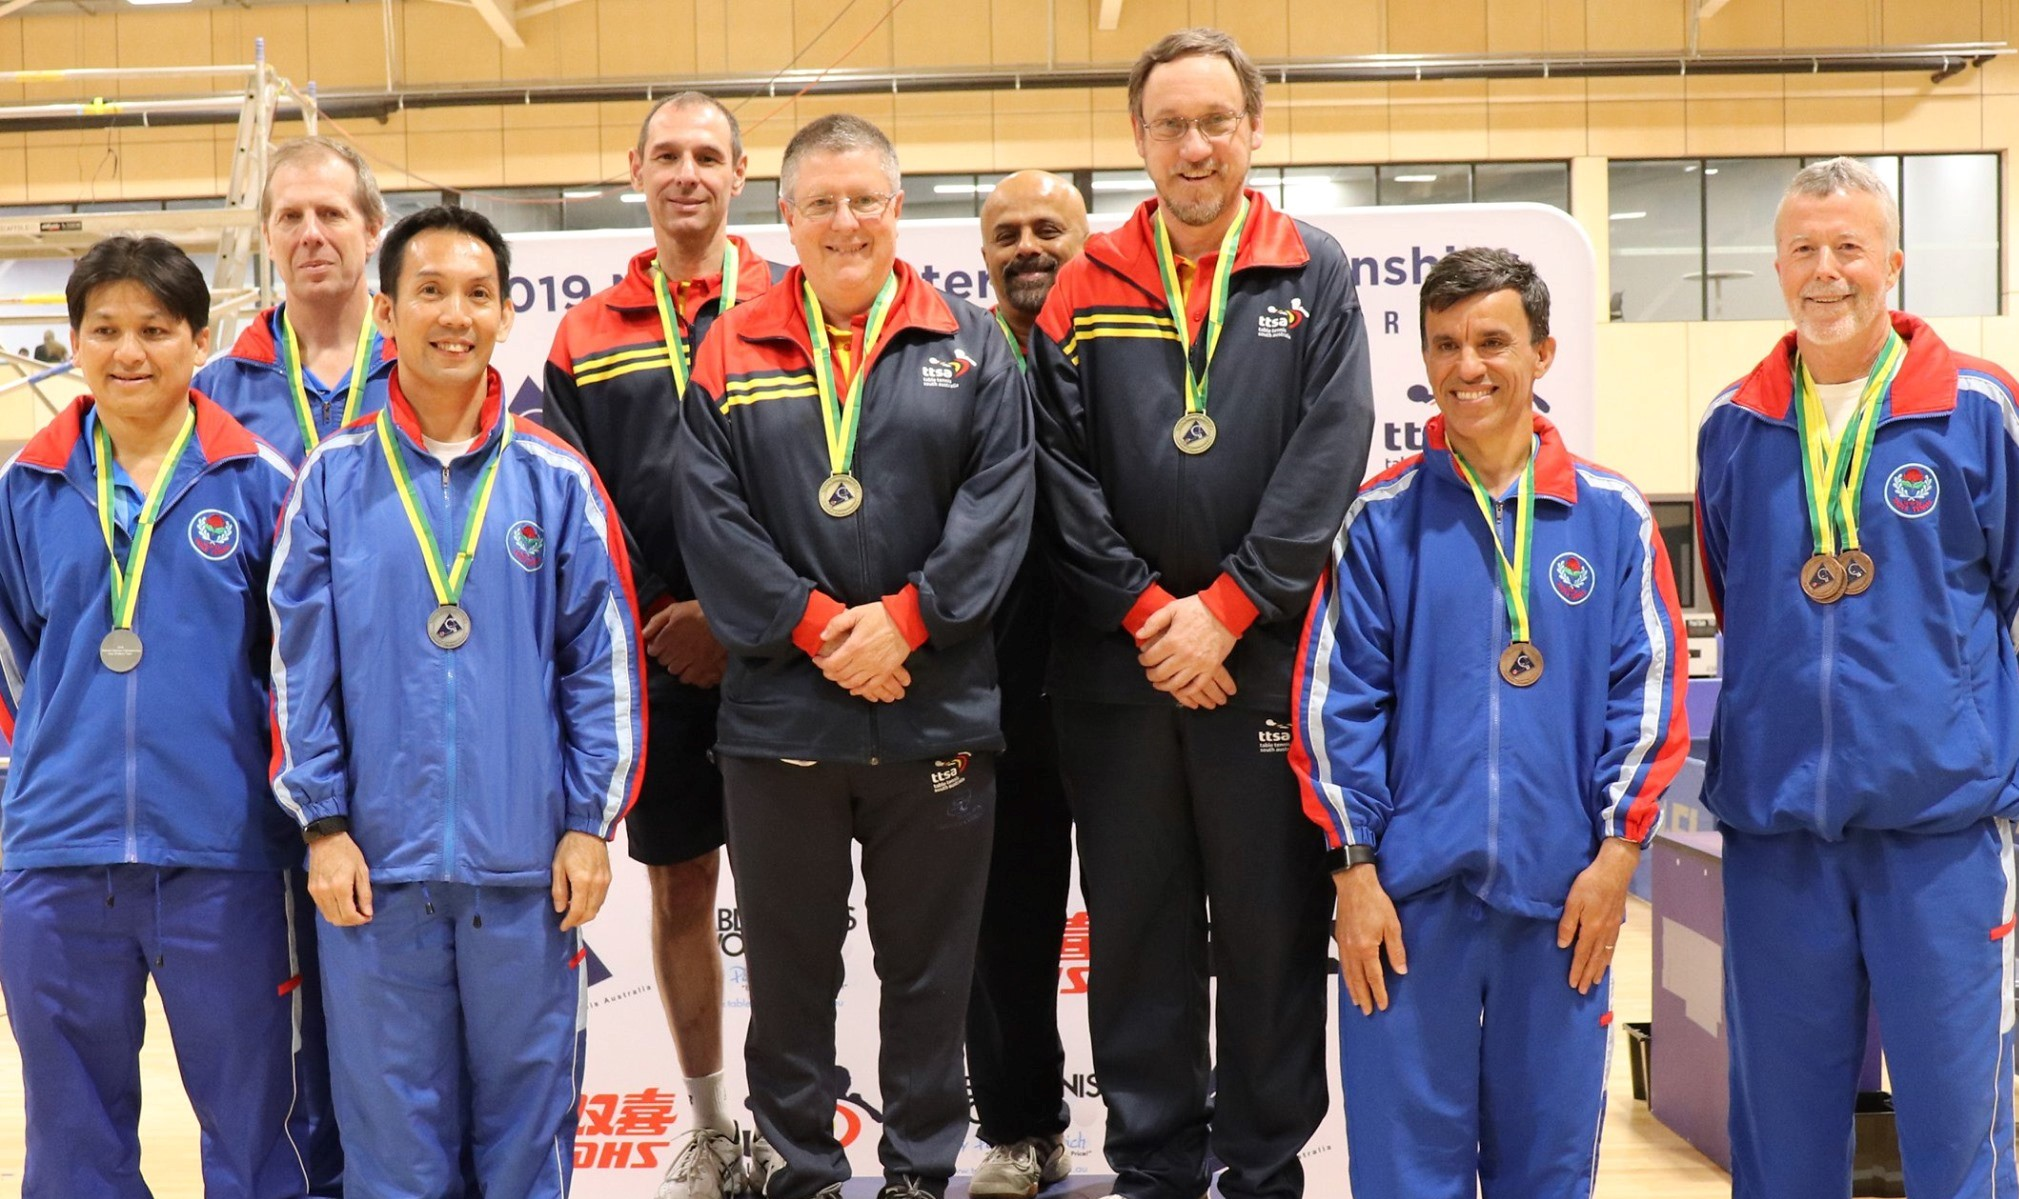 News from the team: Steve Wins Gold!